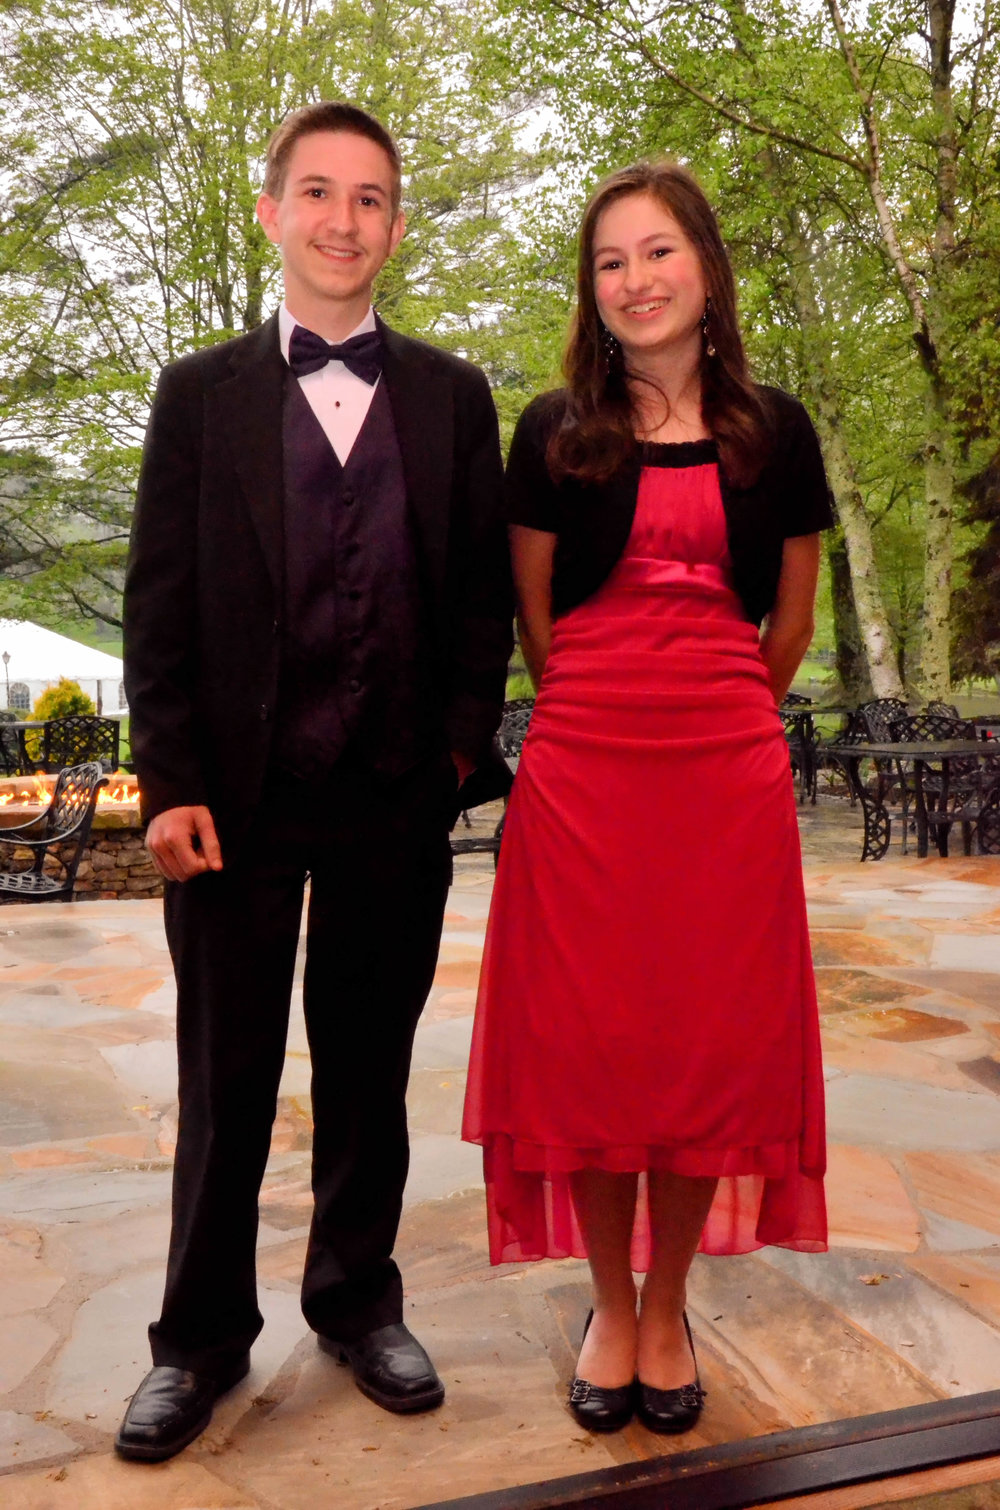 2013-05-18_teenformal_11.jpg